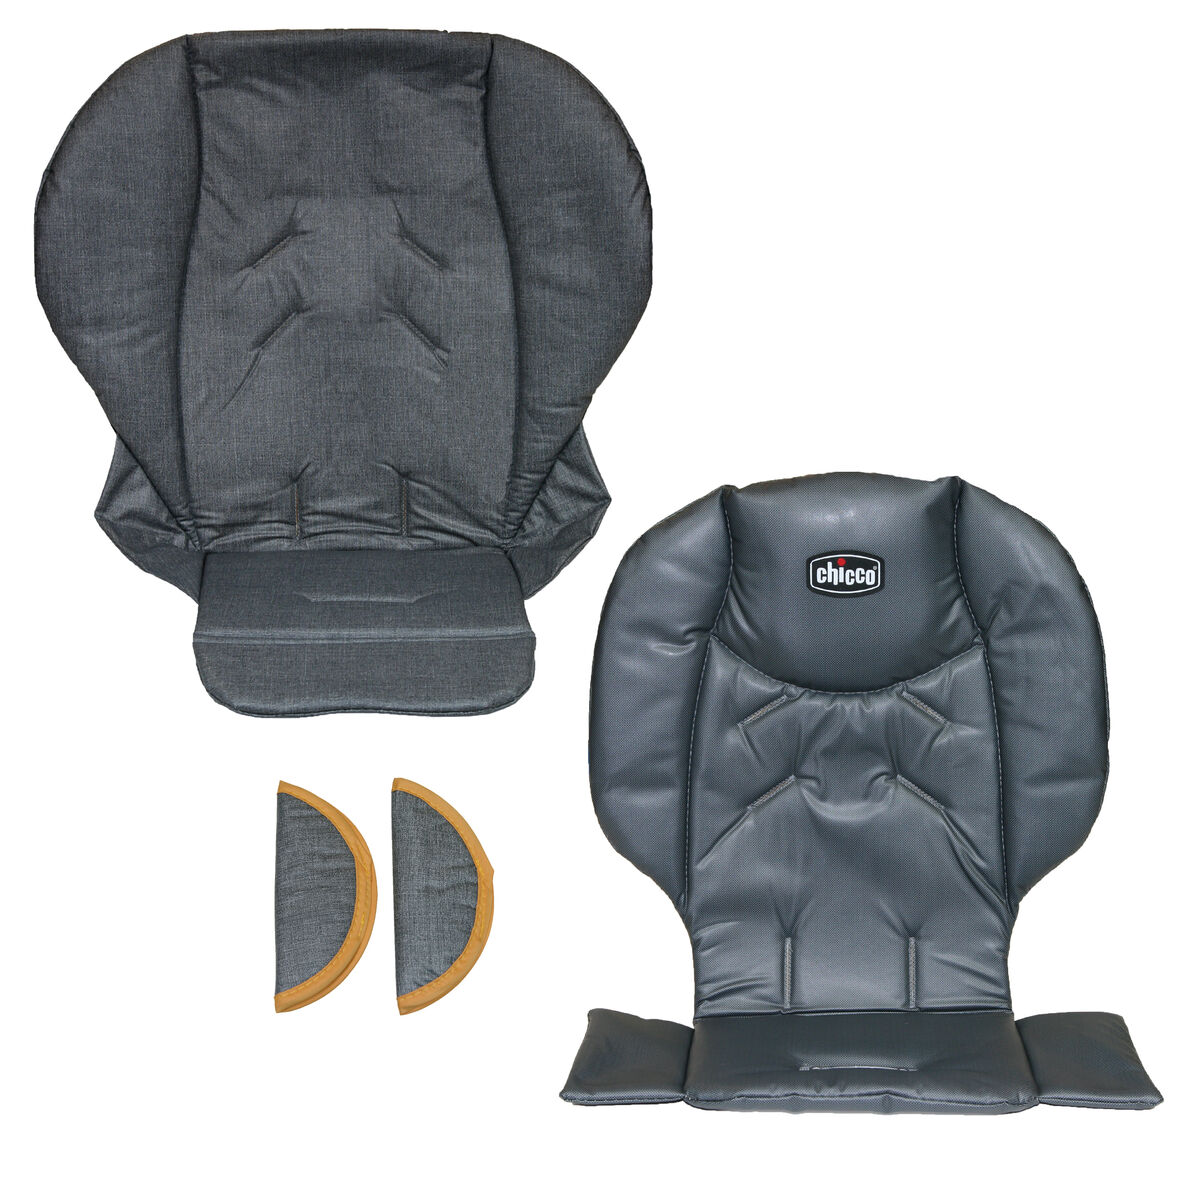 CarseatBlog Recommended Carseats Our detailed reviews and ratings help you to find the safest infant, convertible, combination or booster carseat for your child! We narrow down all the options in our shorter Editors' Picks list to help you choose the best child safety seat for your vehicle.